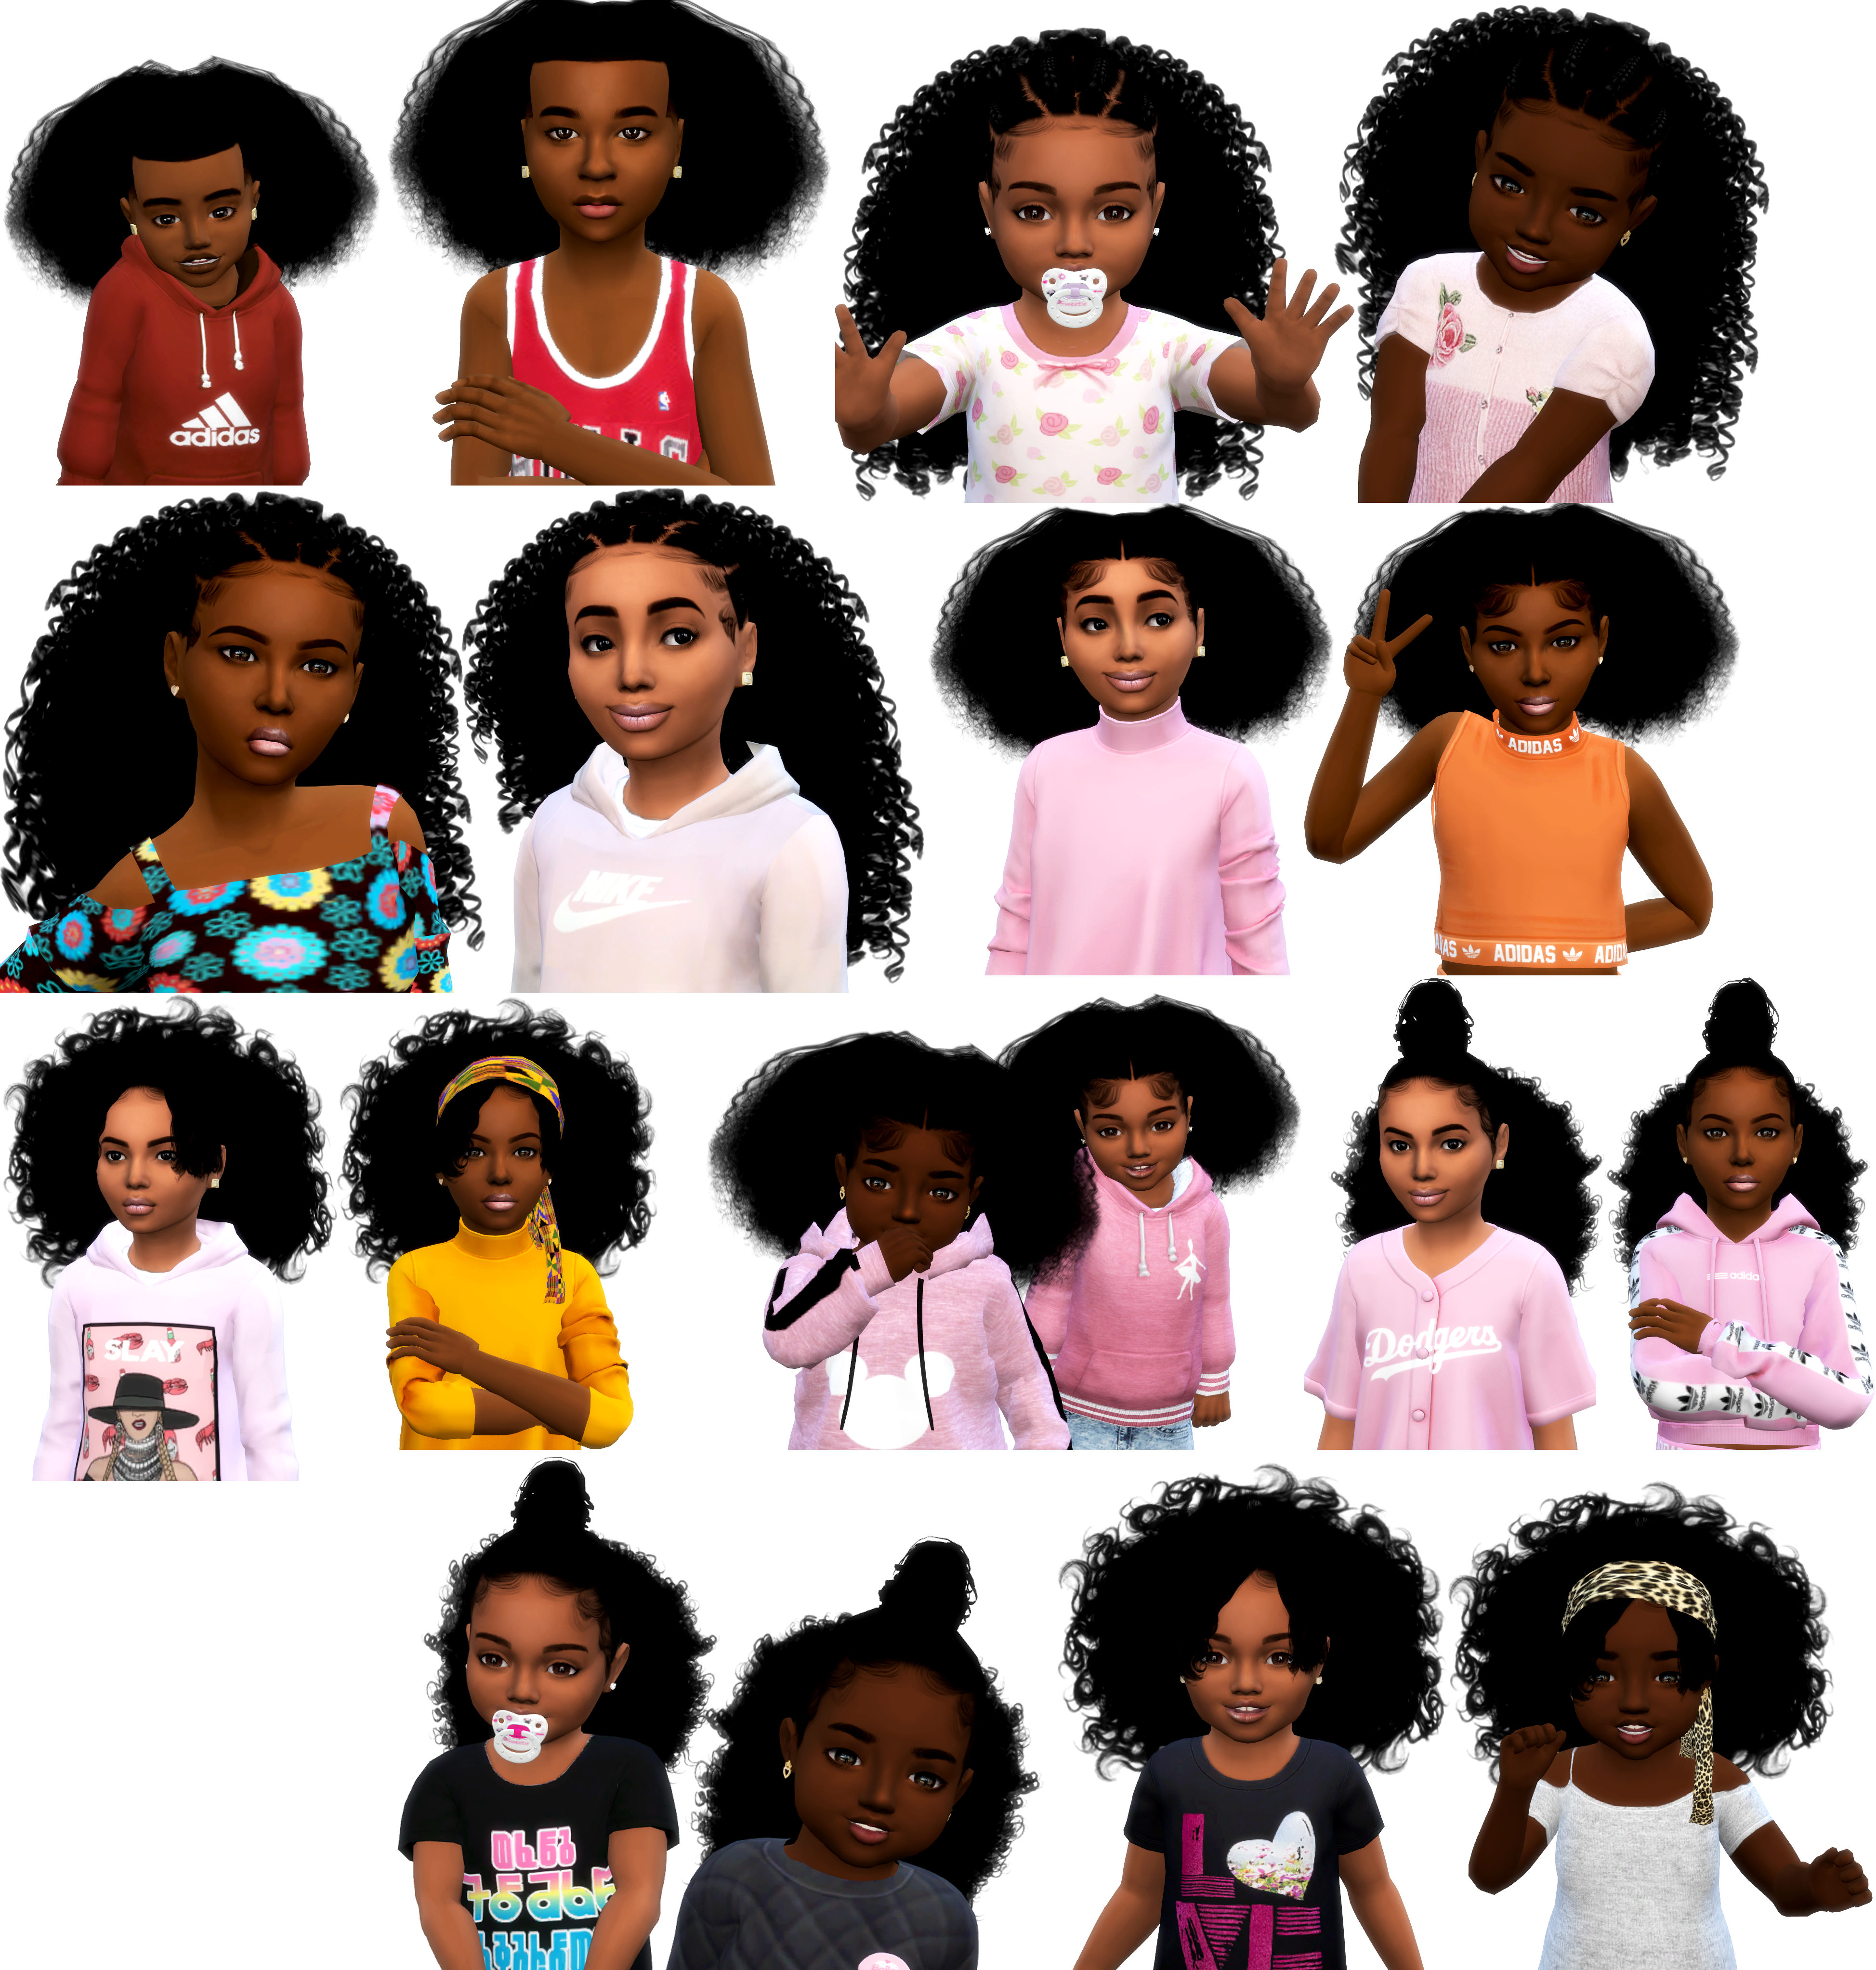 Sims 4 Cc Custom Content Hairstyle Black Simmer African American Child And Toddlers Hair Pack Toddler Hair Sims 4 Sims 4 Children Sims 4 Black Hair